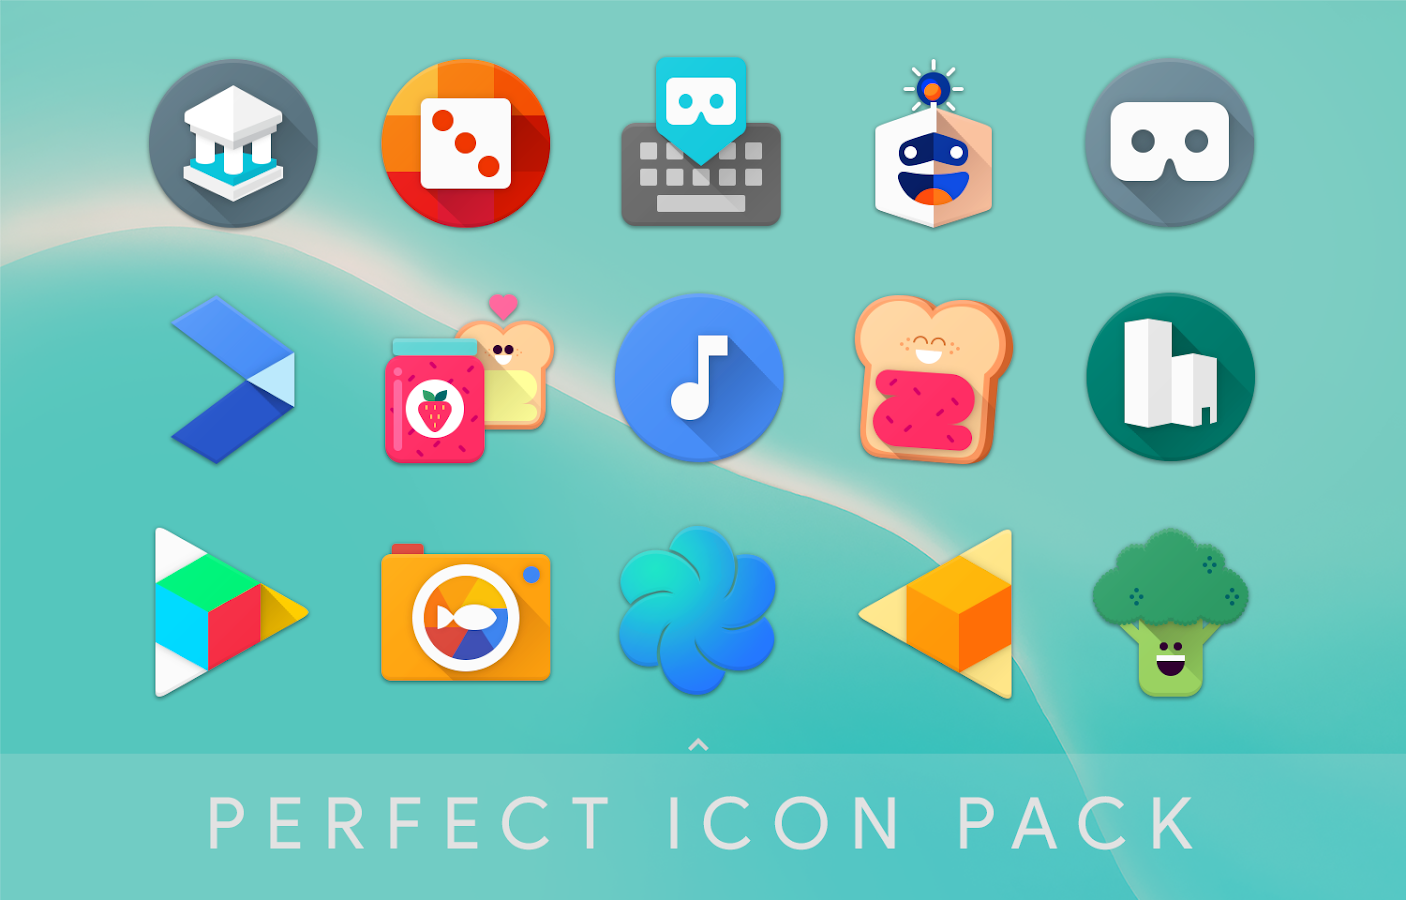 Perfect Icon Pack Screenshot 1